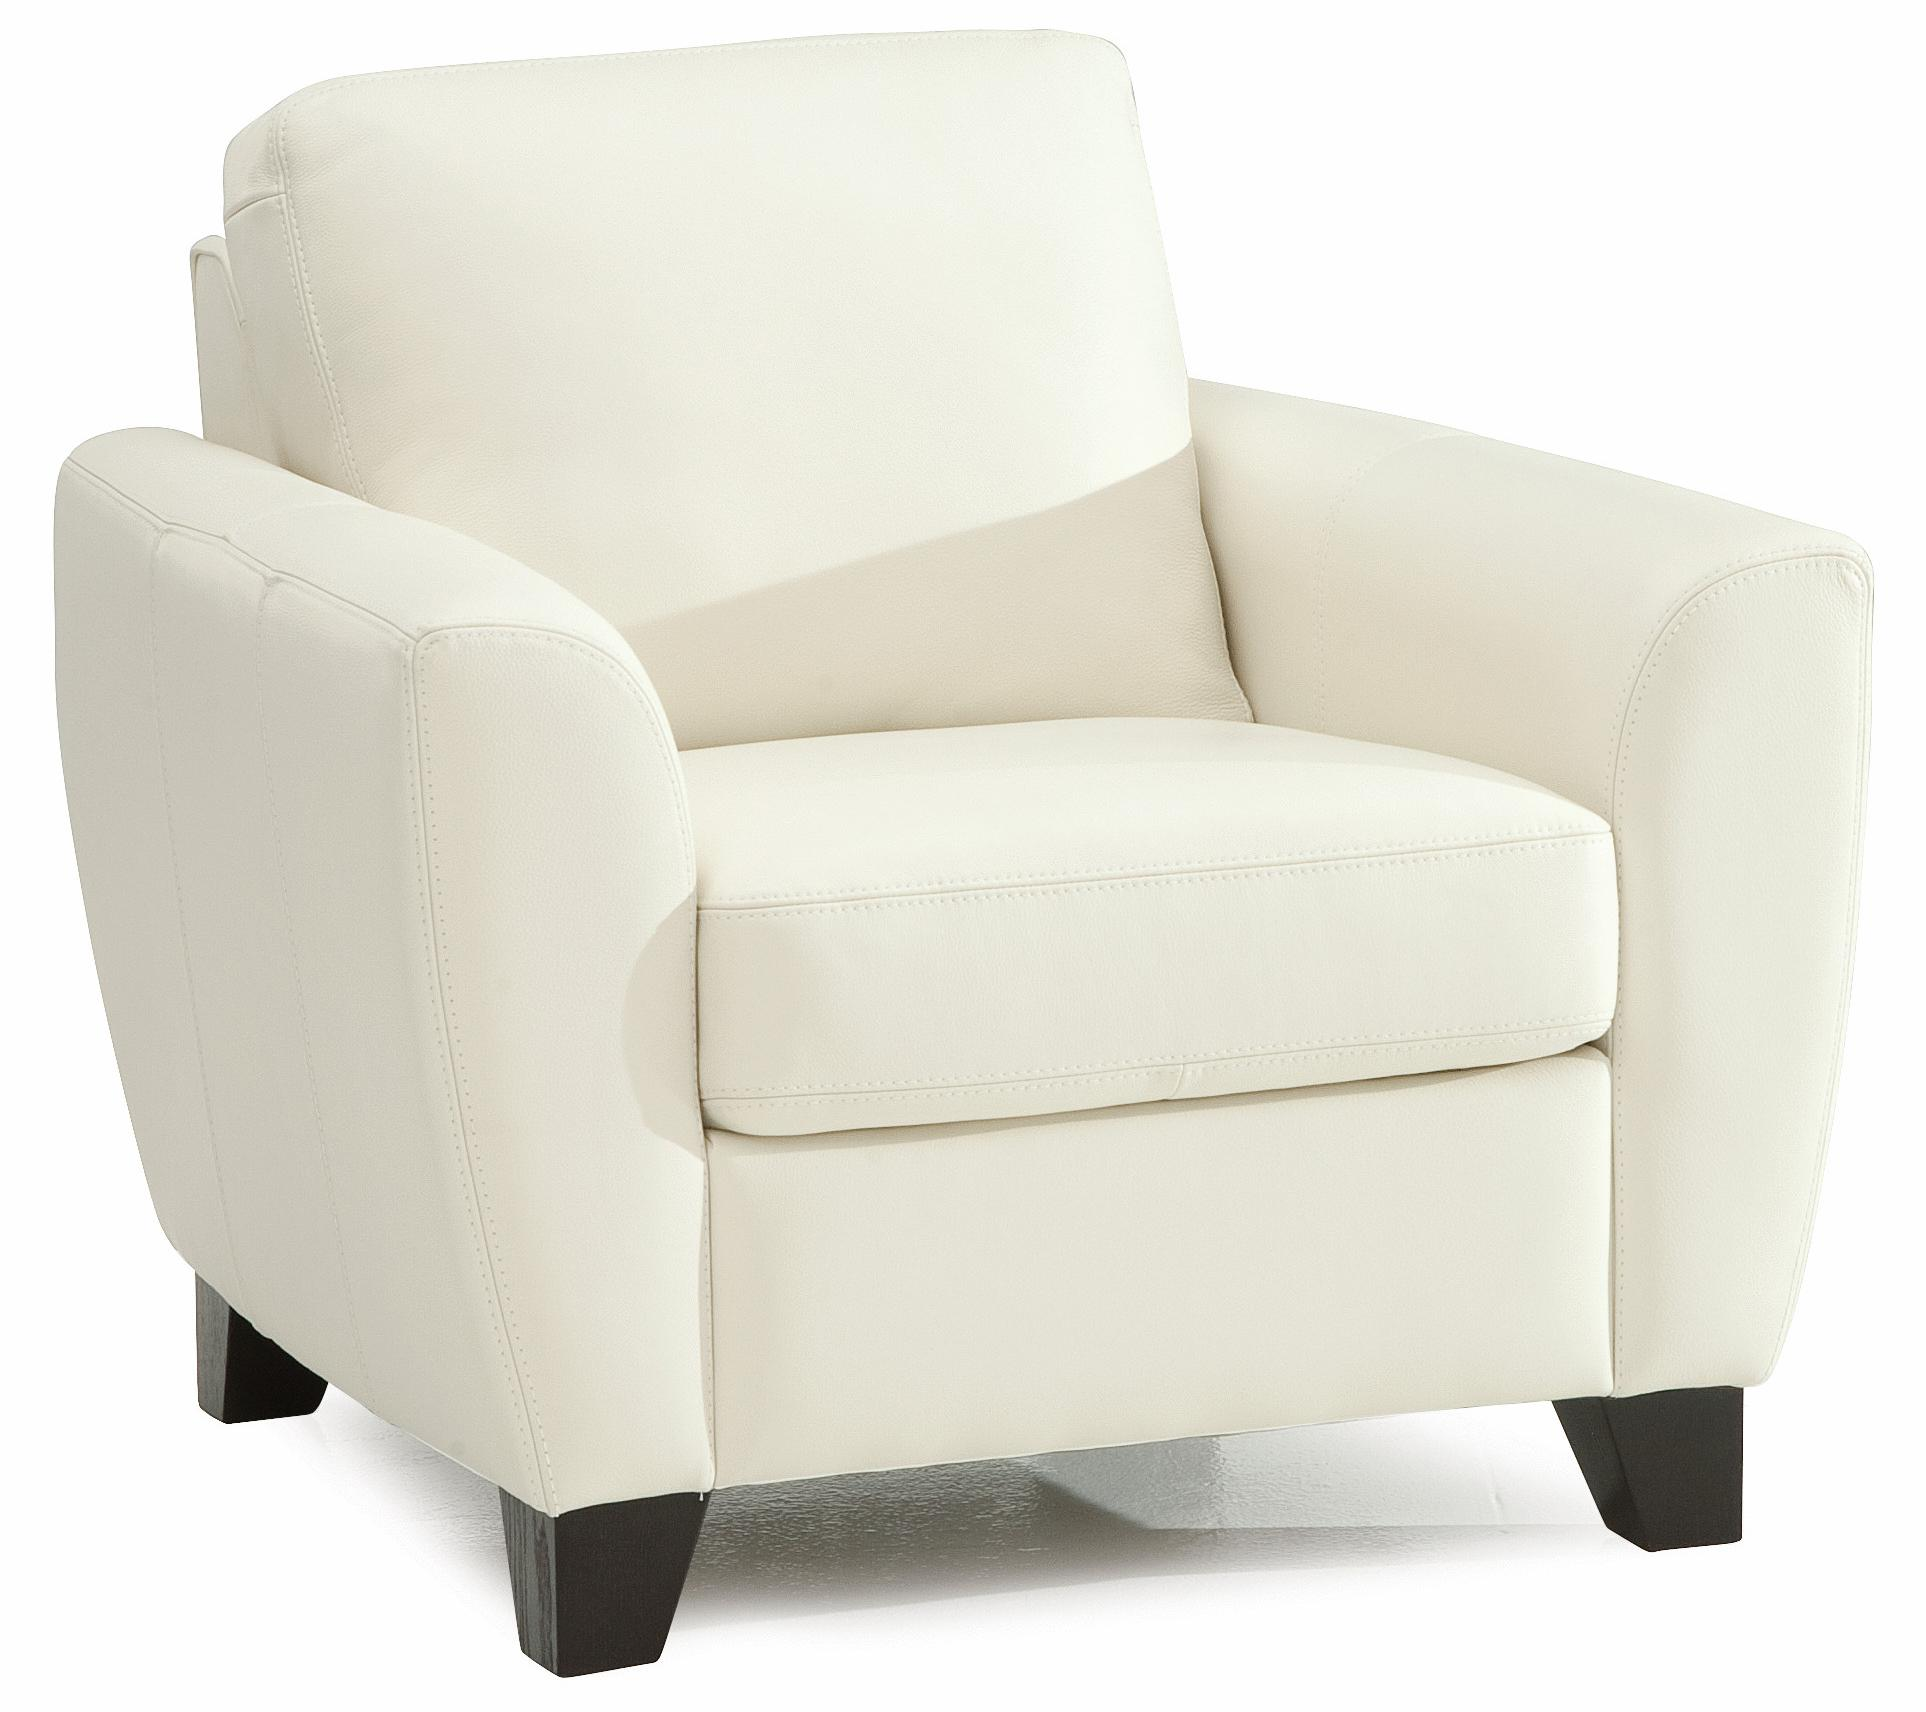 palliser chair and ottoman best office for short person marymount 77332 02 contemporary stationary